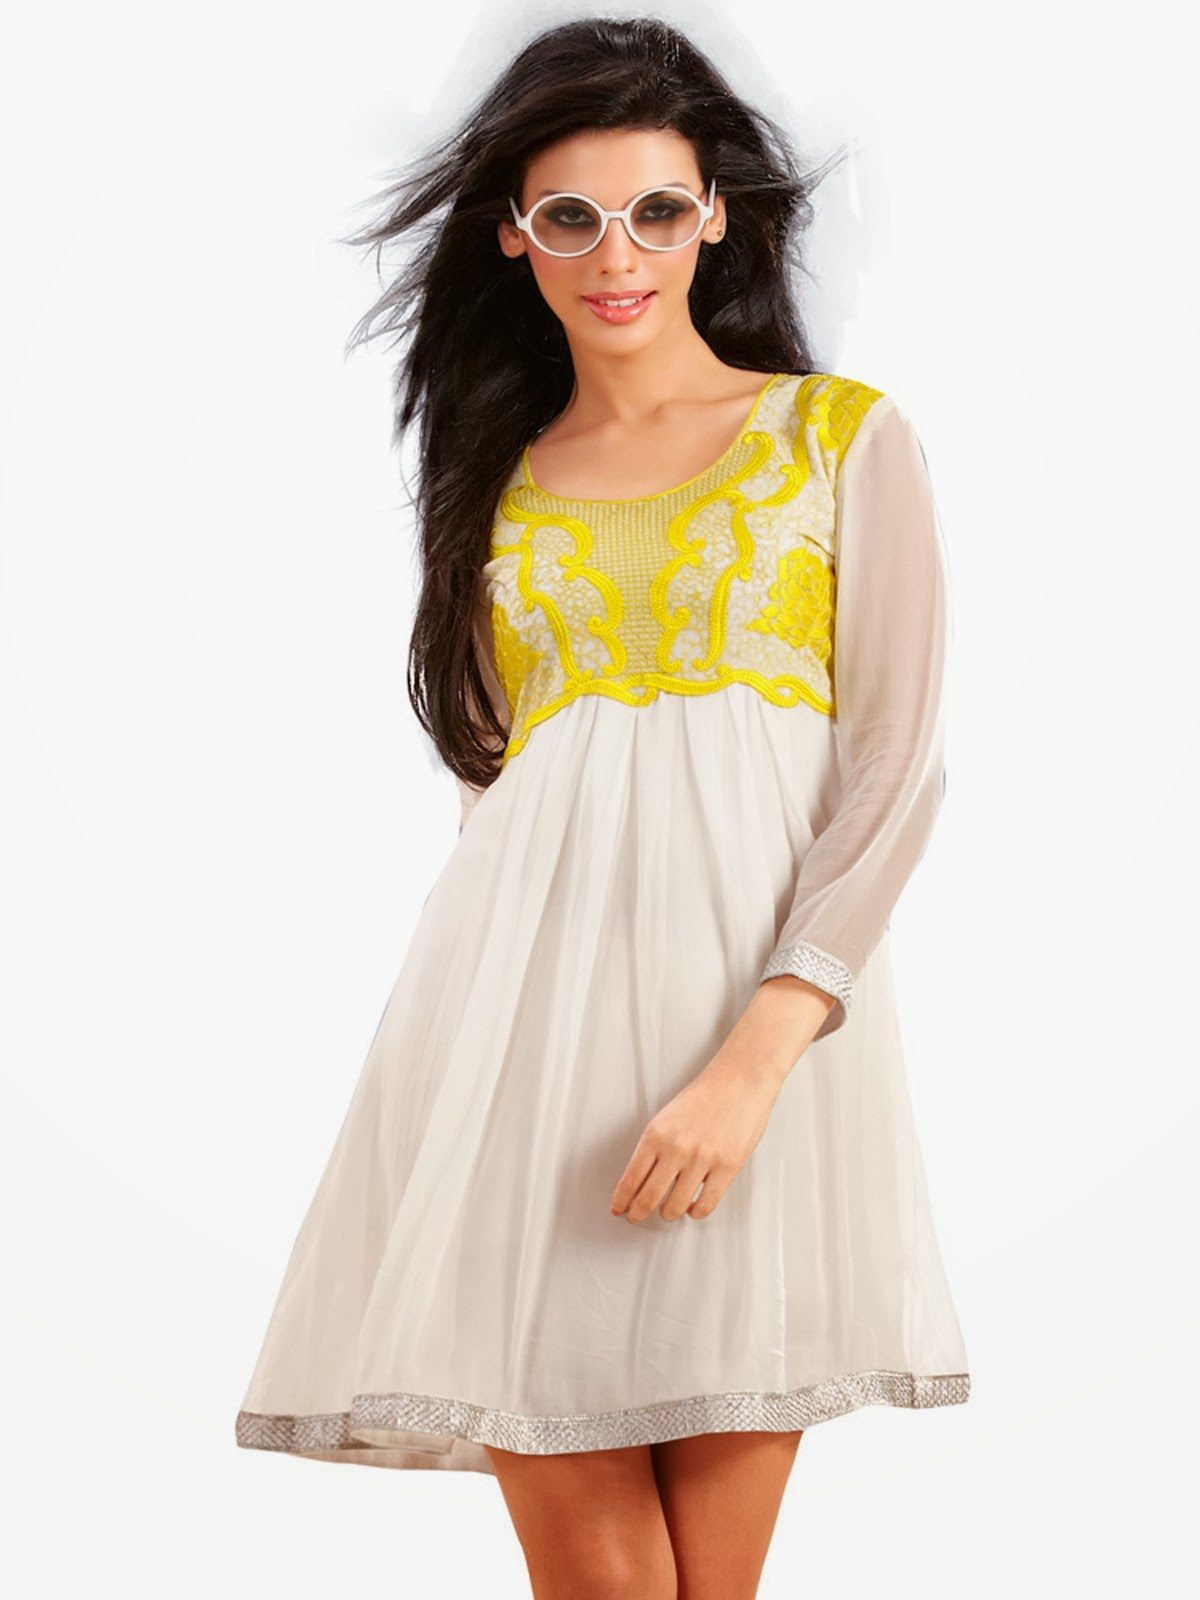 Modern dress casual - Find This Pin And More On Modern Ethnic Wear